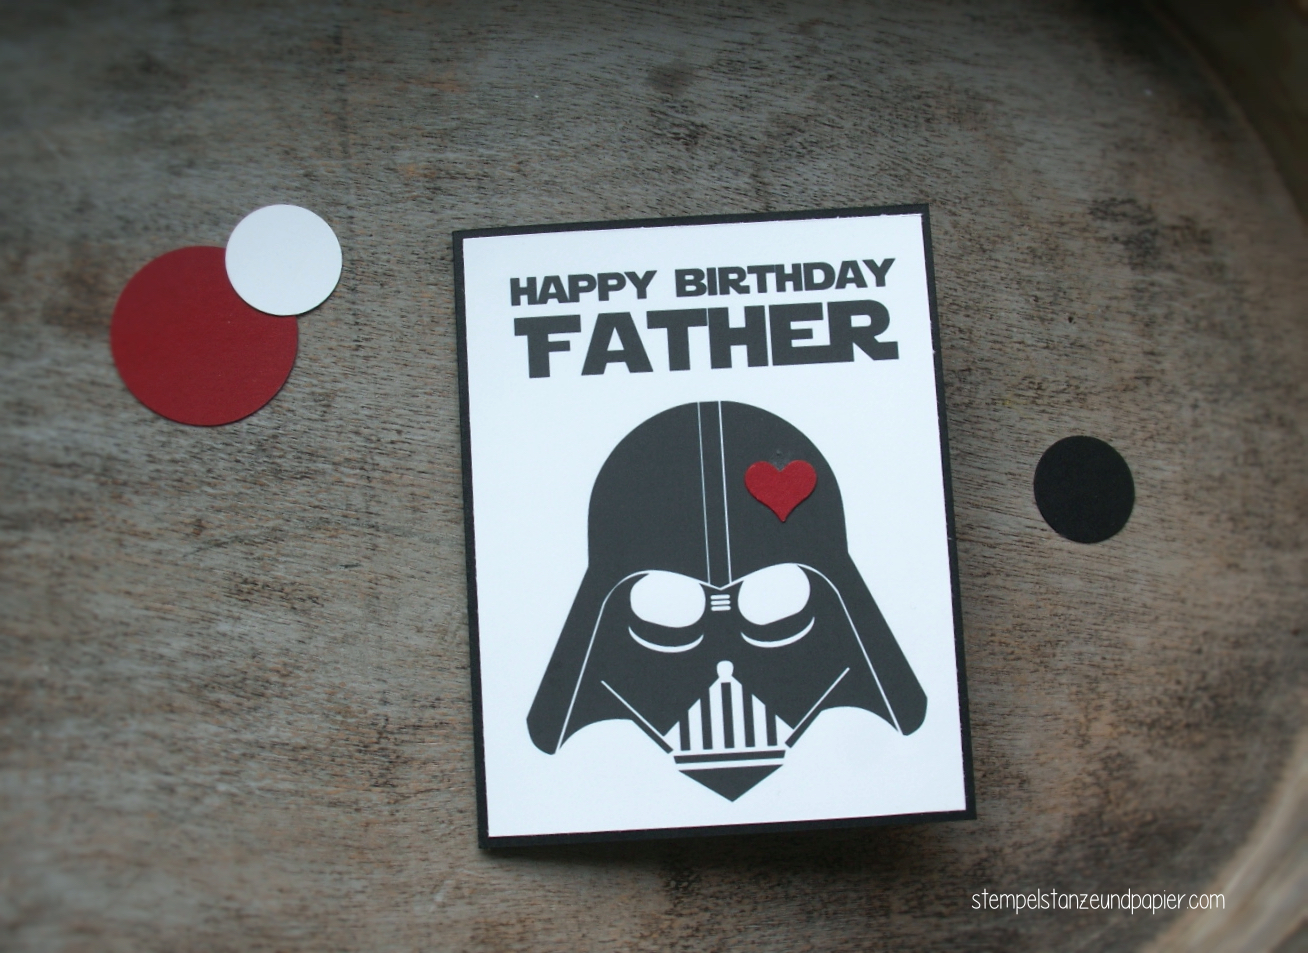 Happy Birthday Father Starwars Geburtstagskarte Stempel Stanze